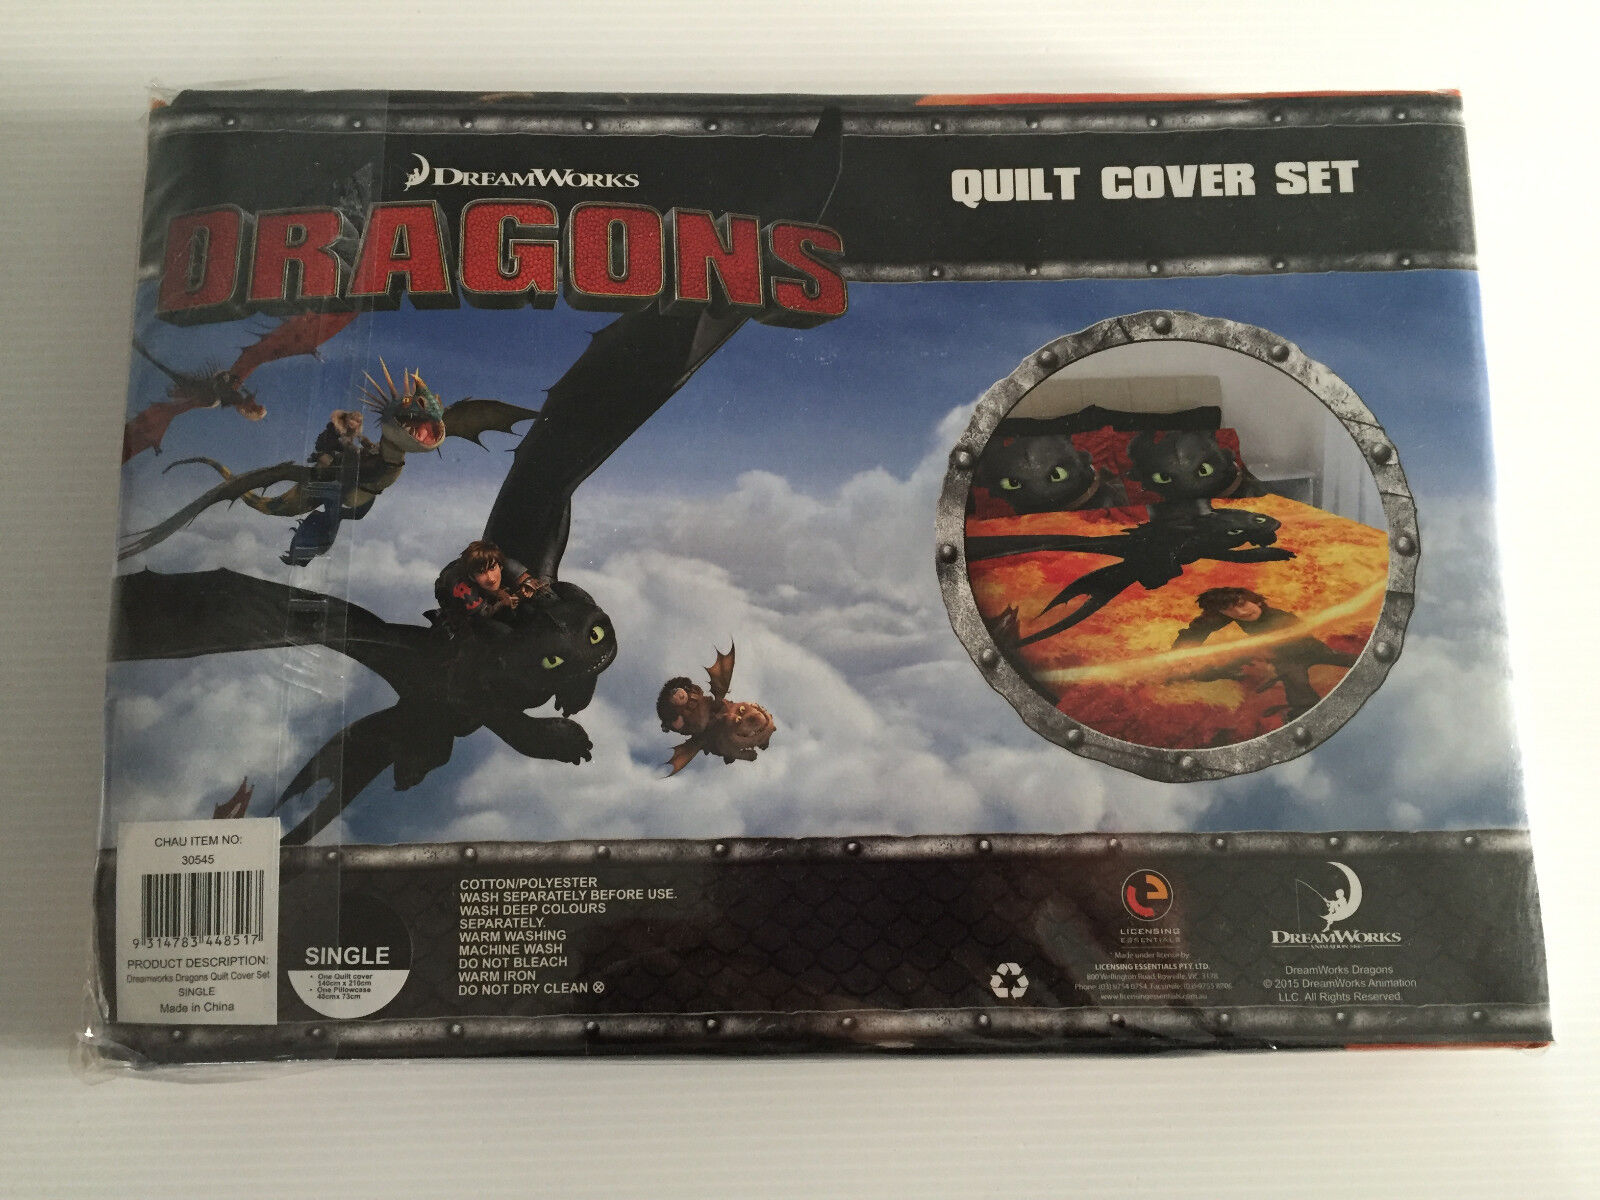 Dreamworks how to train your dragon chau single twin bed quilt picture 1 of 3 ccuart